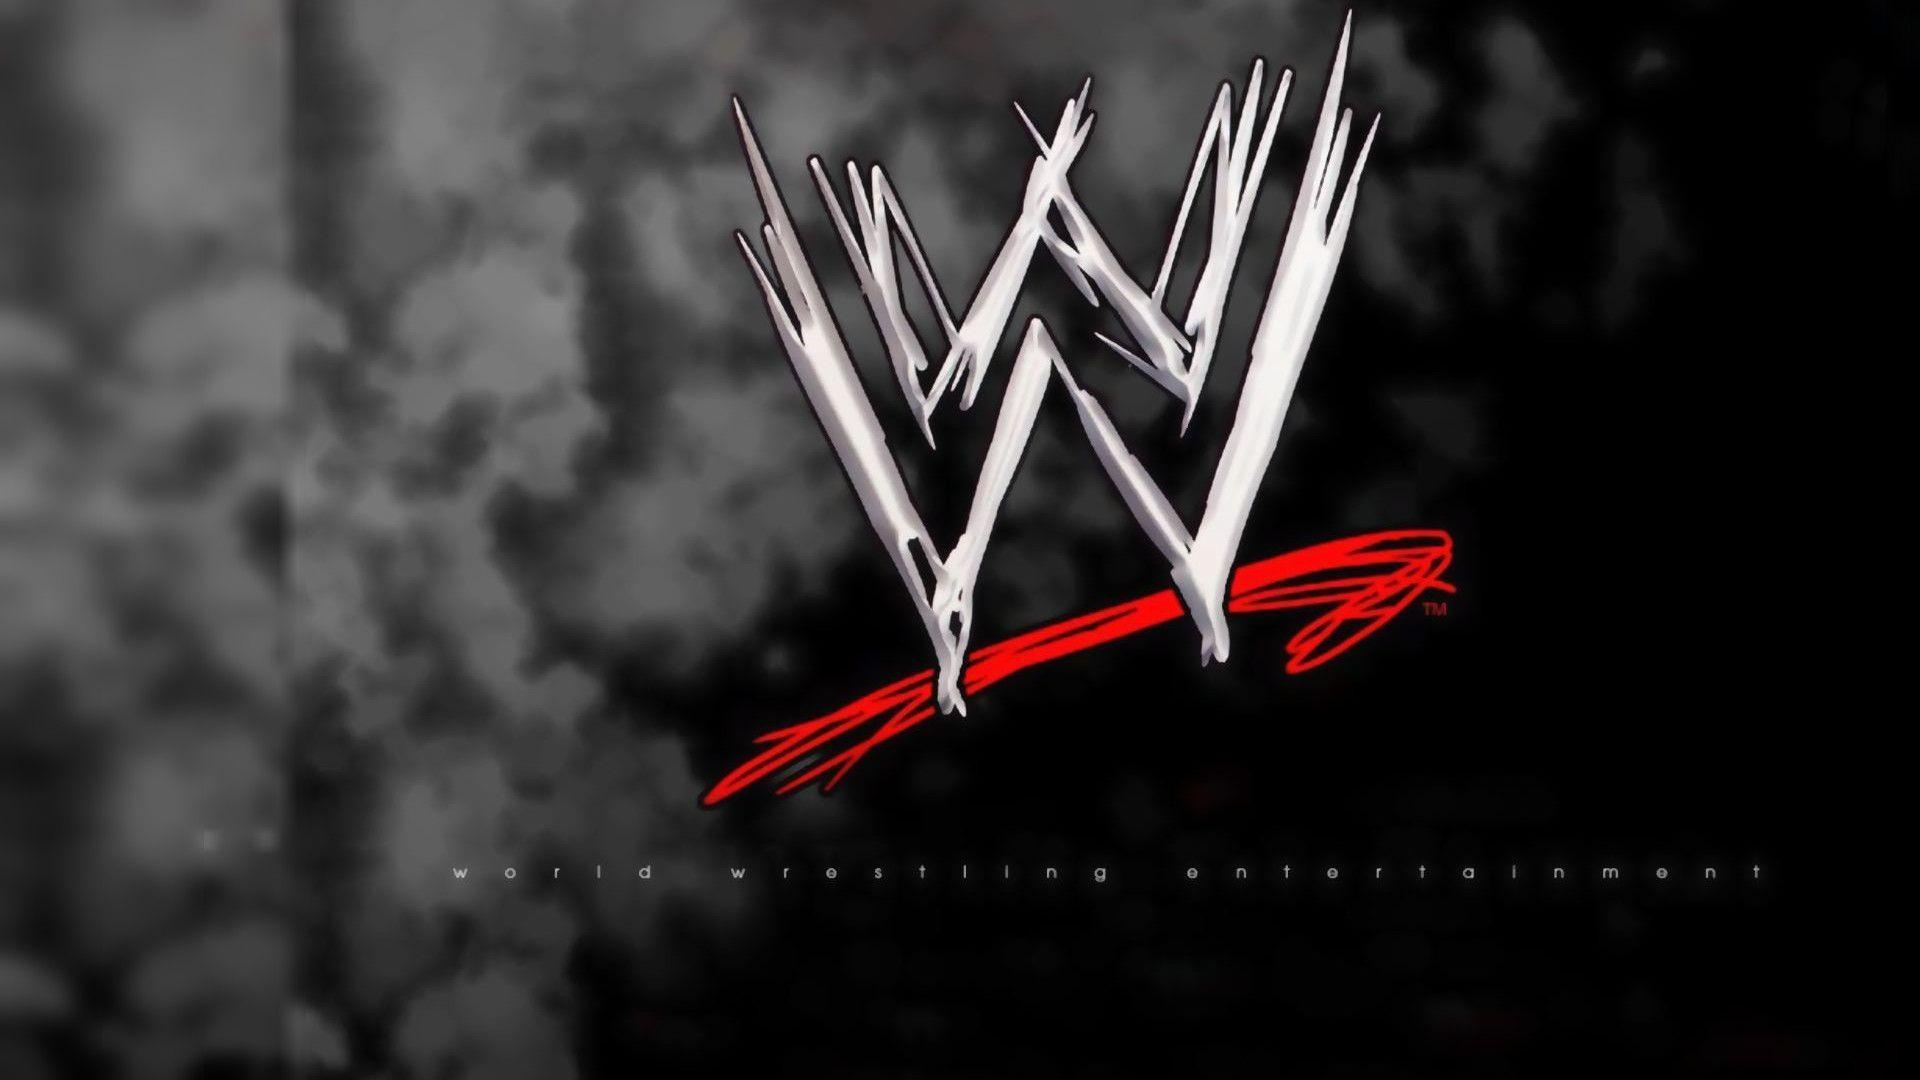 WWE Wallpapers | Free Art Wallpapers